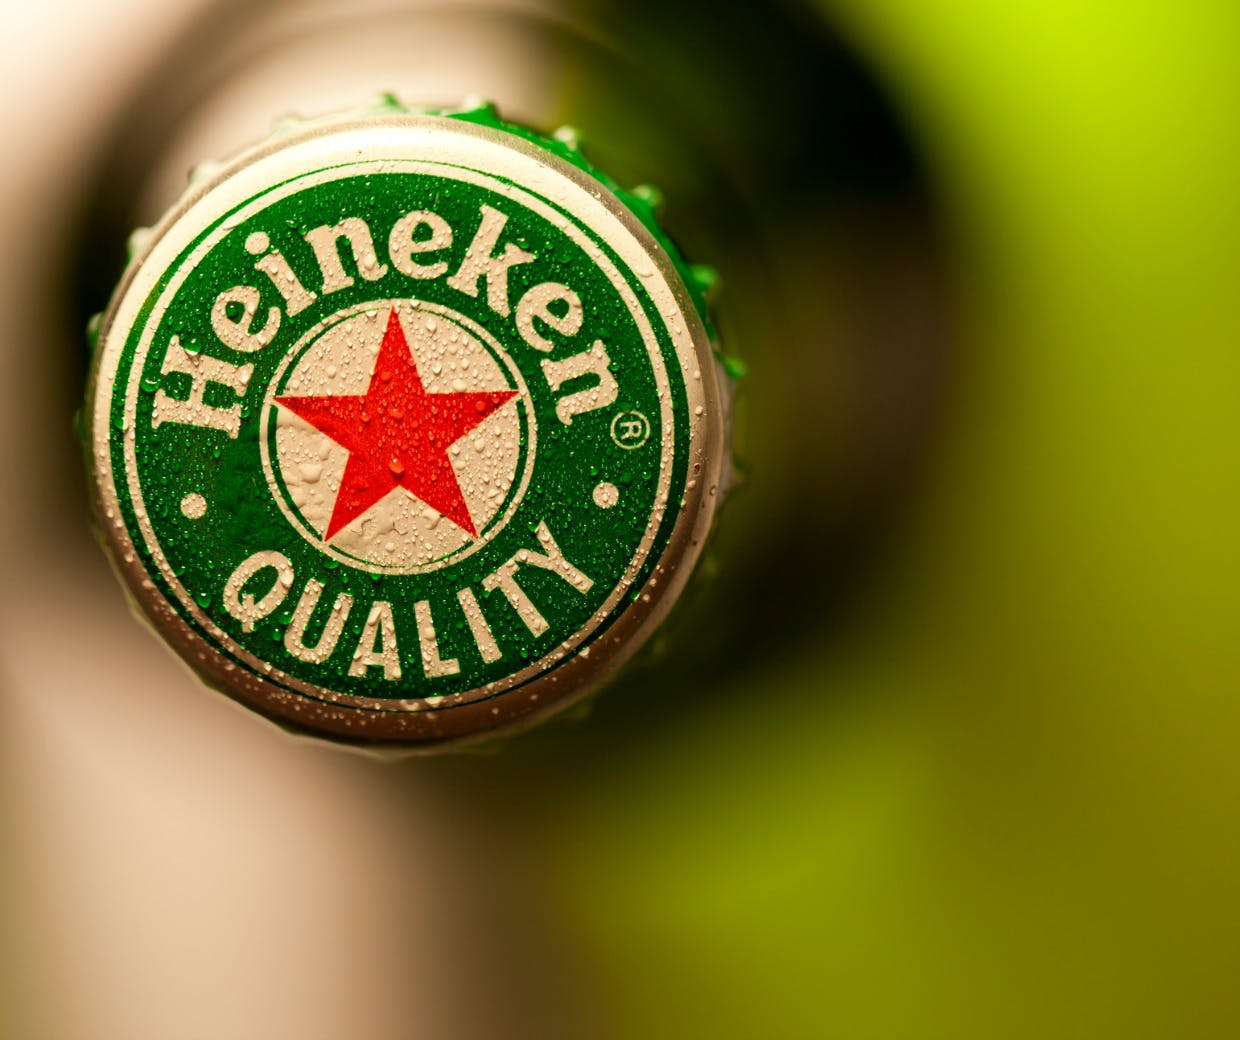 WATCH This Heineken Ad For Light Beer Was Pulled After Rapper Calls It Terribly Racist